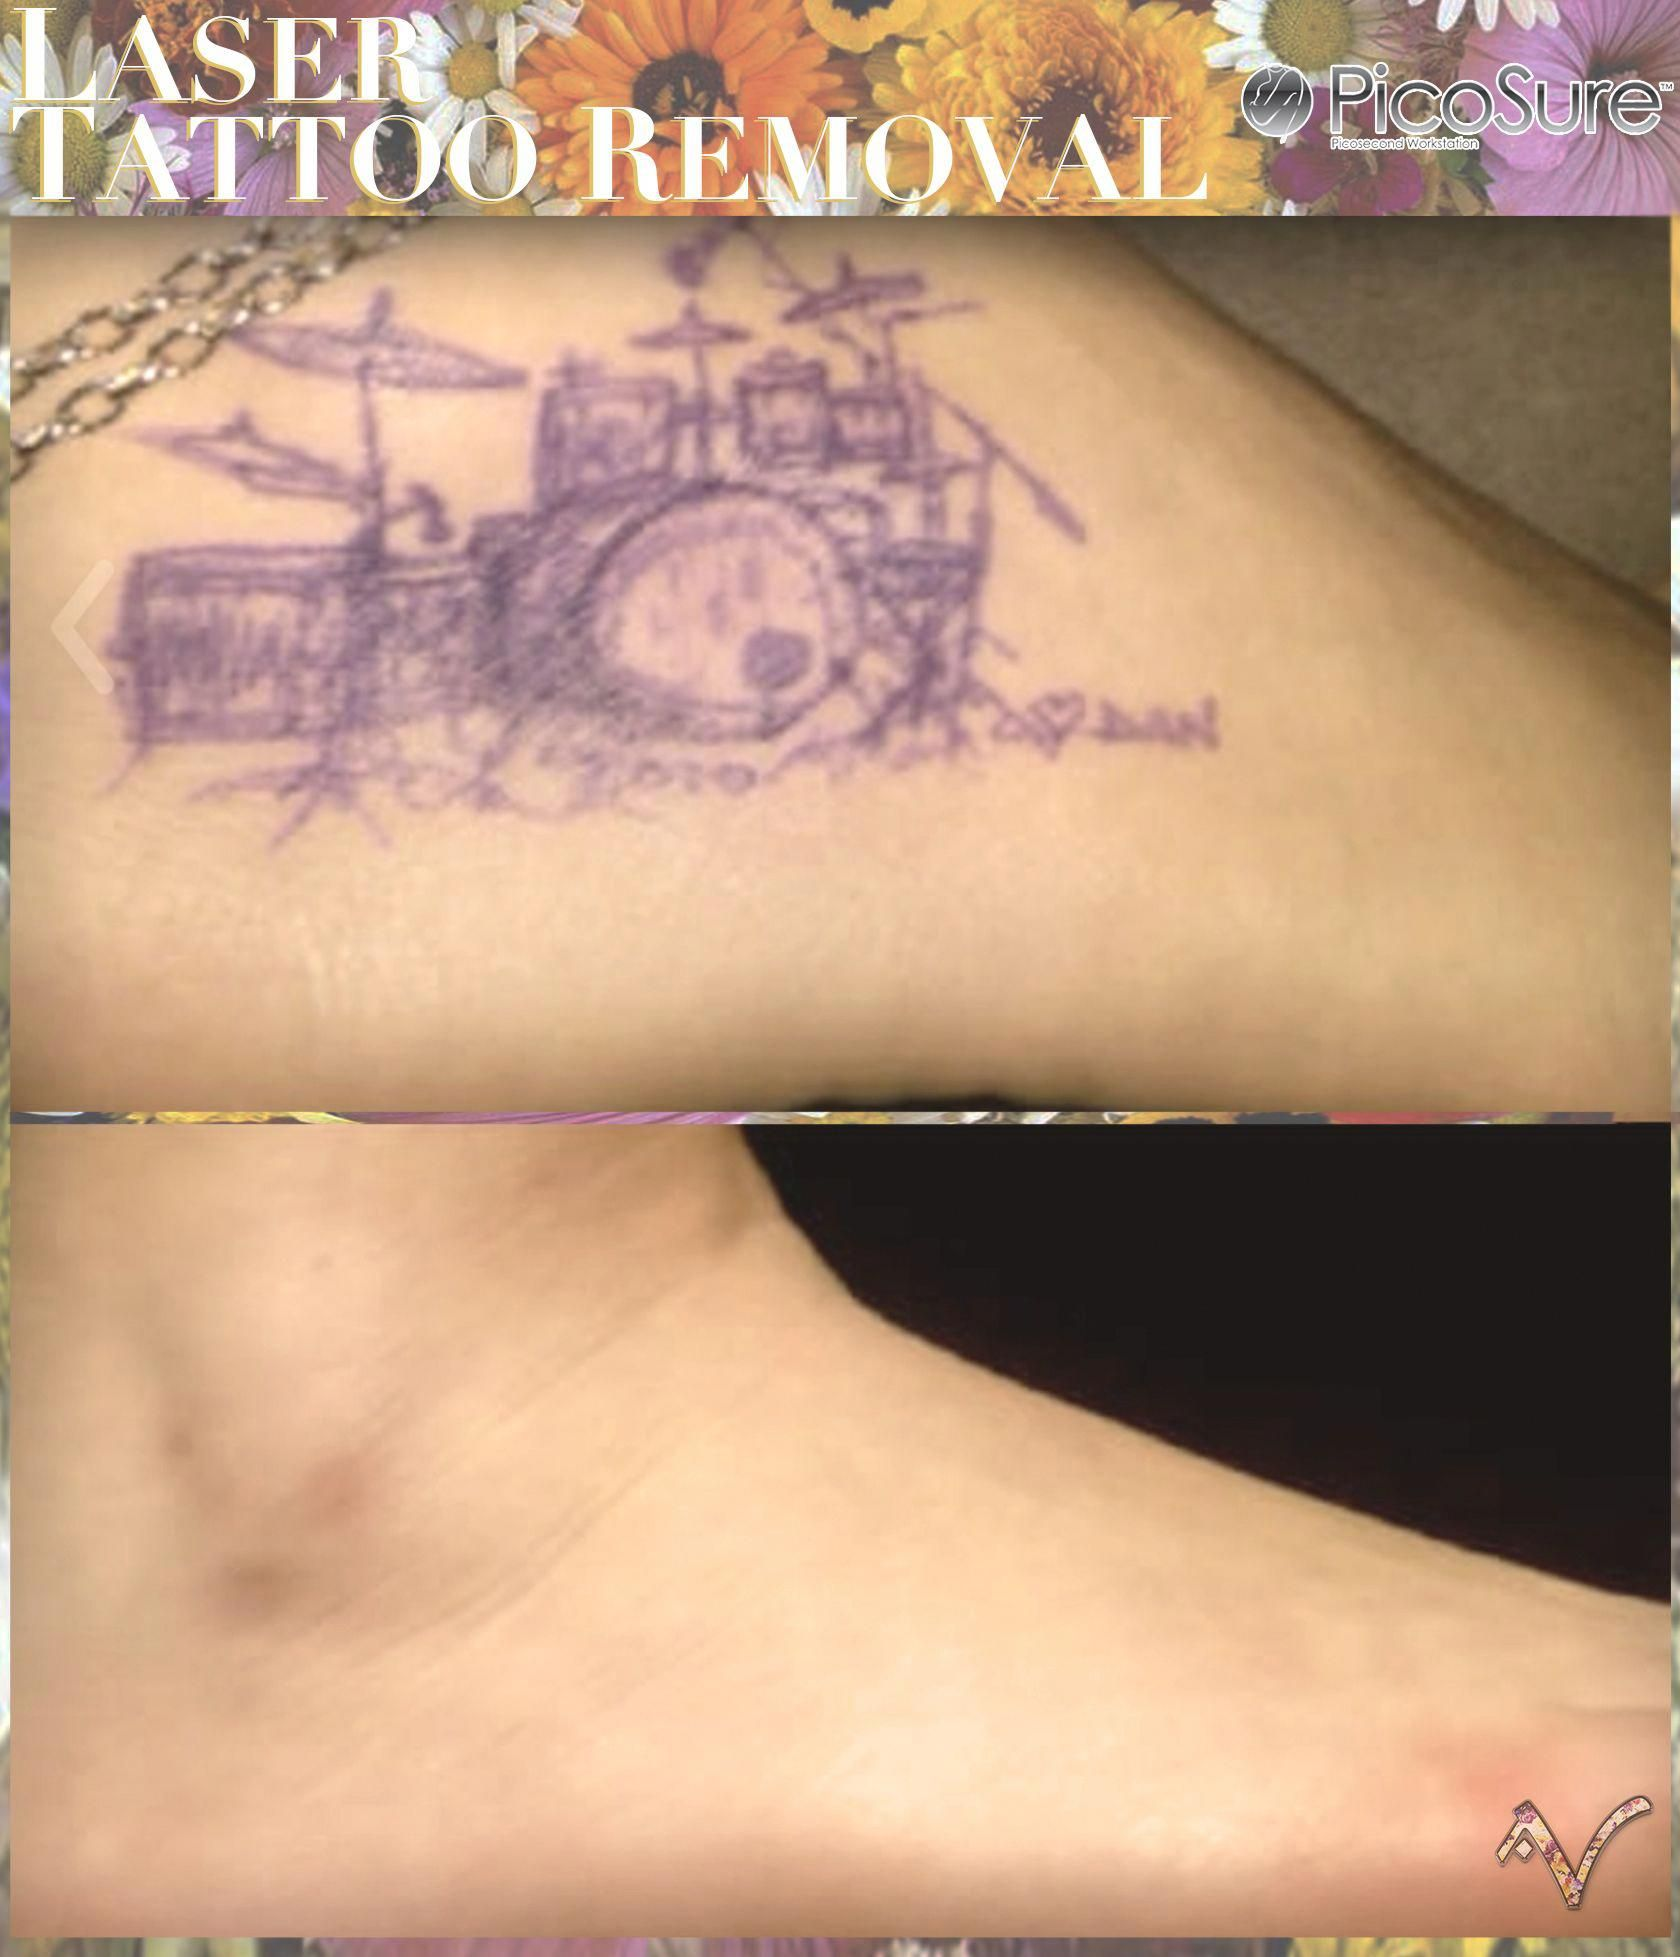 Picosure Laser Tattoo Removal #tattooremovalfacts | Tattoo Removal